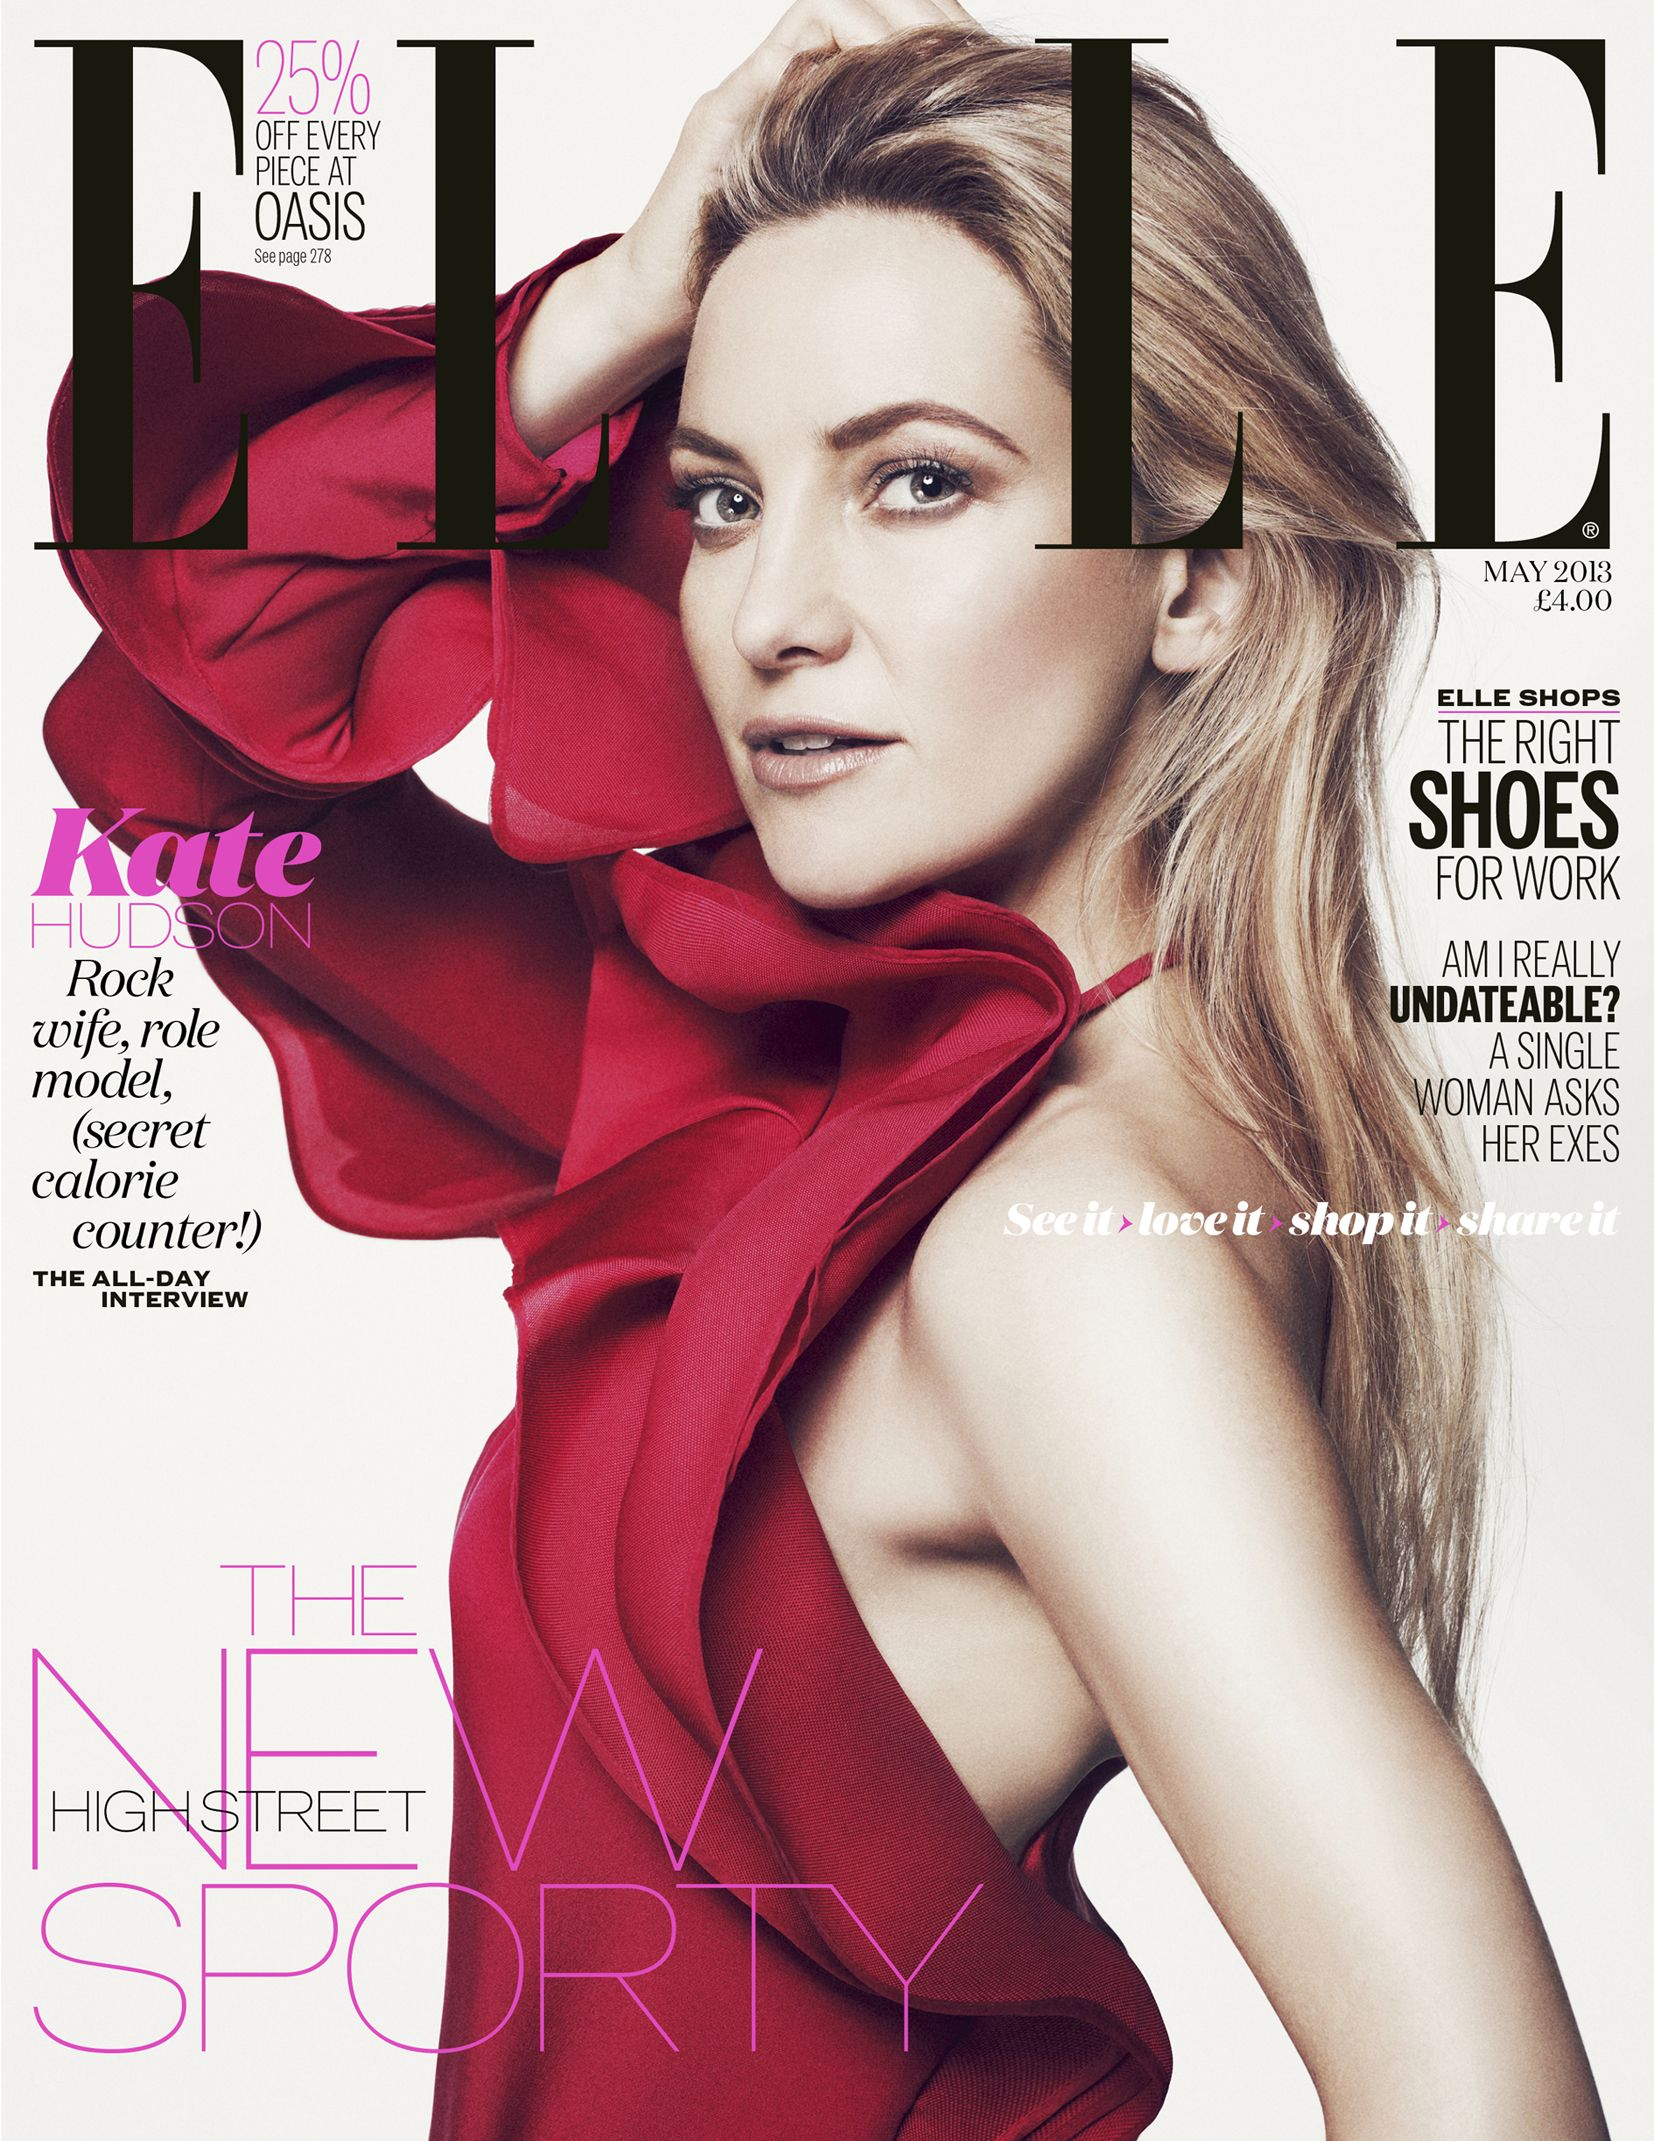 """Kate Hudson covers #Elle Magazine May 2013: Says She Is """"Less a Rock Chick"""" in Her Family Life 